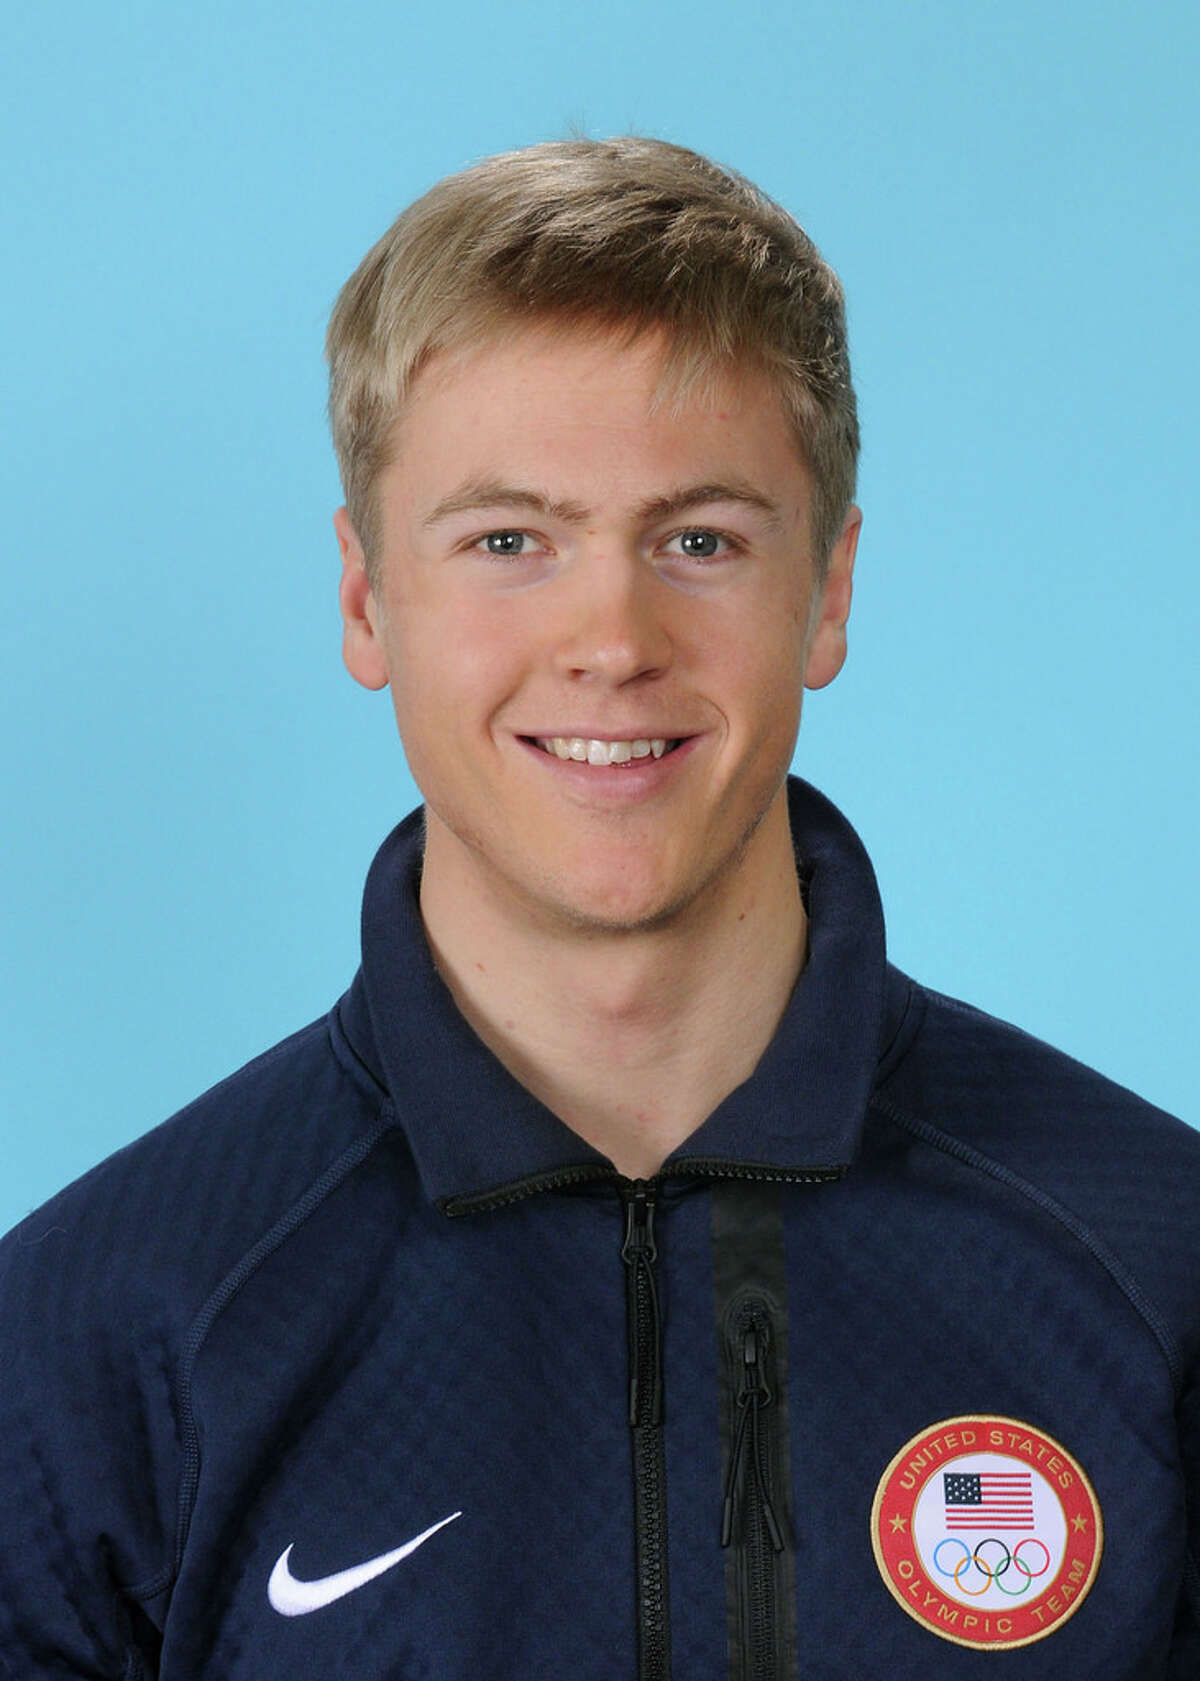 Eric Bjornsen Sport: Cross-country skiingAge: 22Local connection: Grew up in Winthrop, skiing in the Methow Valley. Brother of teammate Sadie Bjornsen.Previous Olympics experience: None. (Placed 14th in the team sprint free at the 2013 world championships in Val di Fiemme, Italy.)